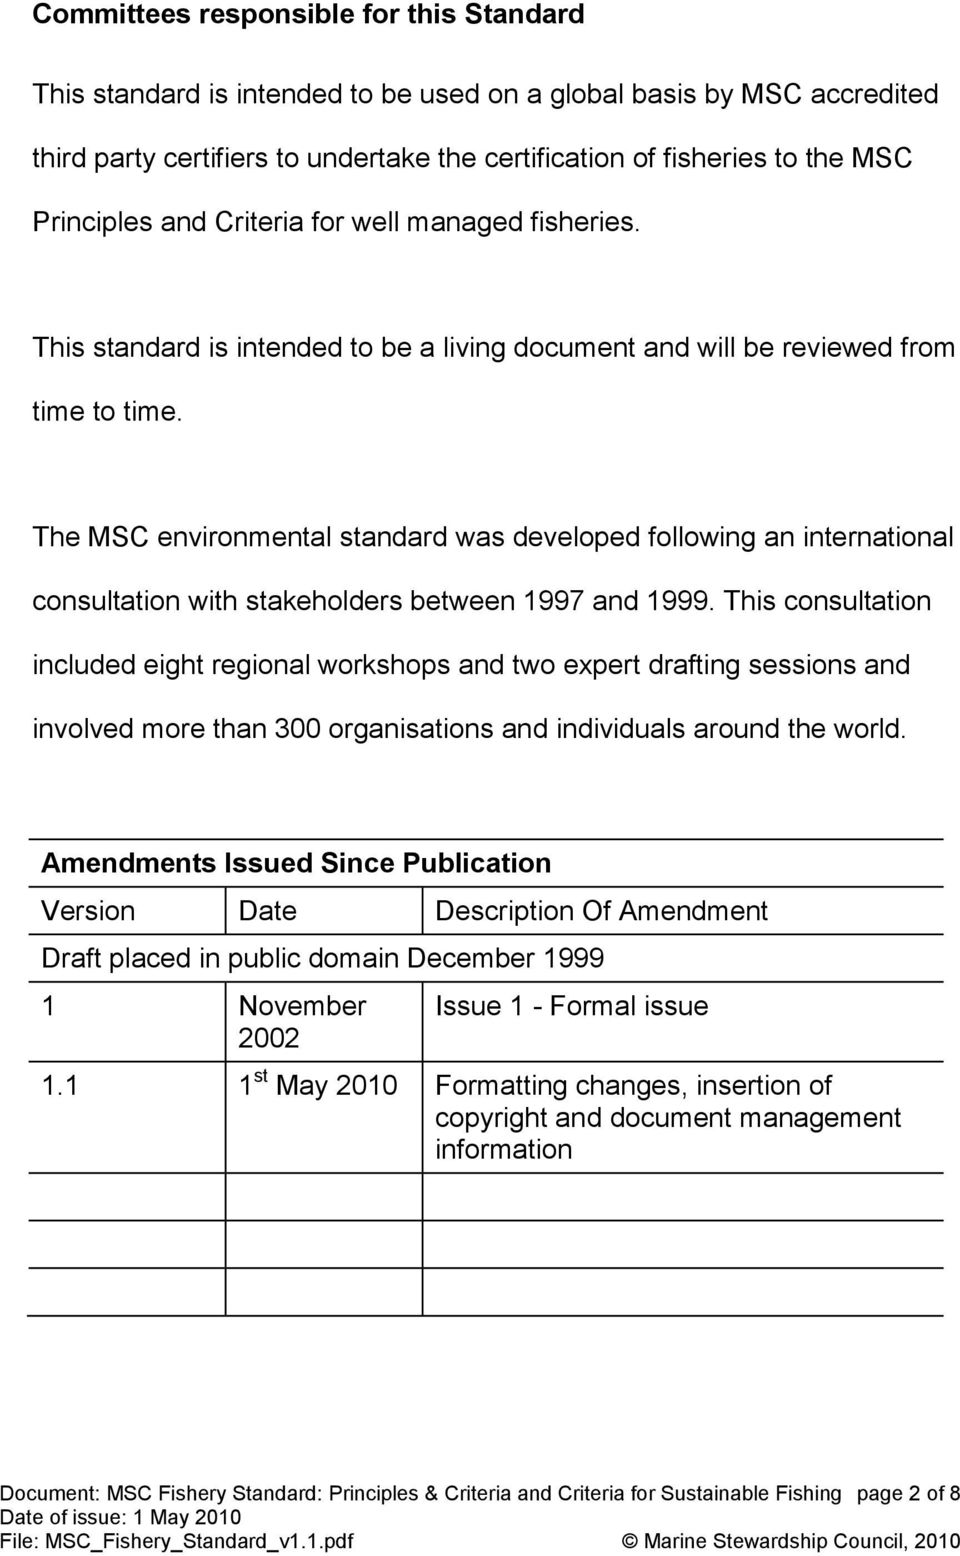 The MSC environmental standard was developed following an international consultation with stakeholders between 1997 and 1999.